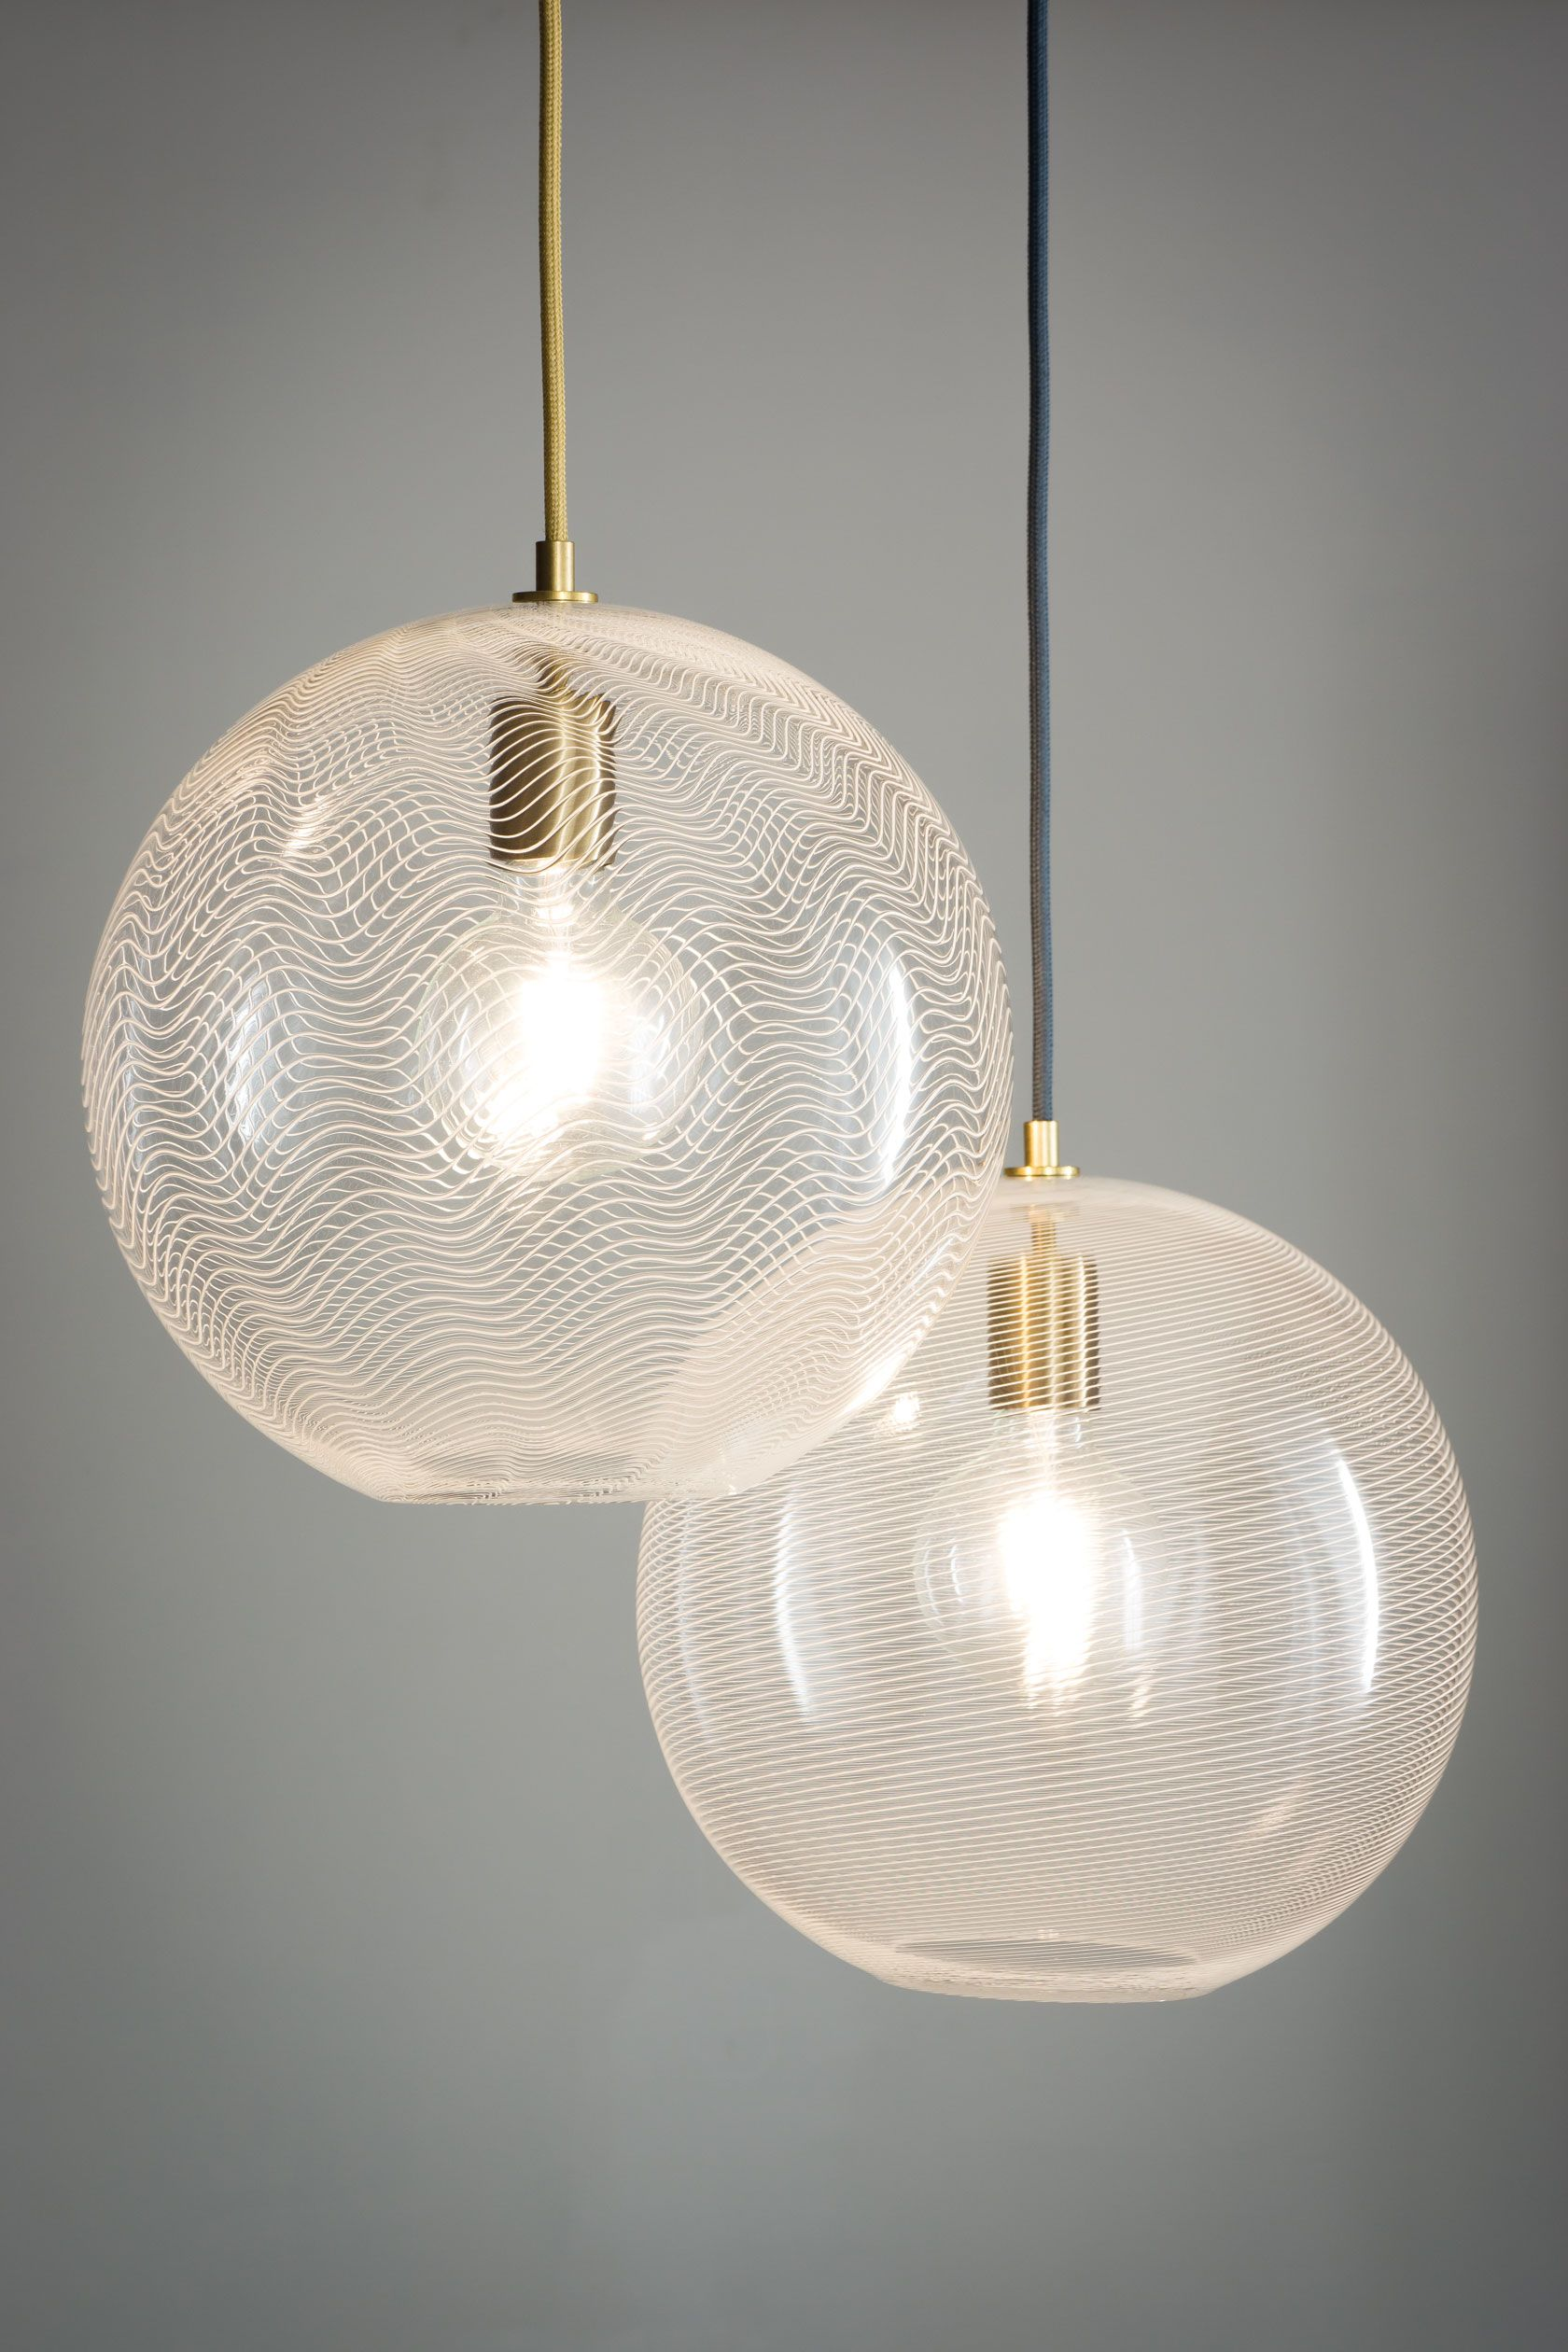 Cane Pendant Light By Keep With Images Globe Pendant Light Fixture Pendant Light Globe Pendant Light